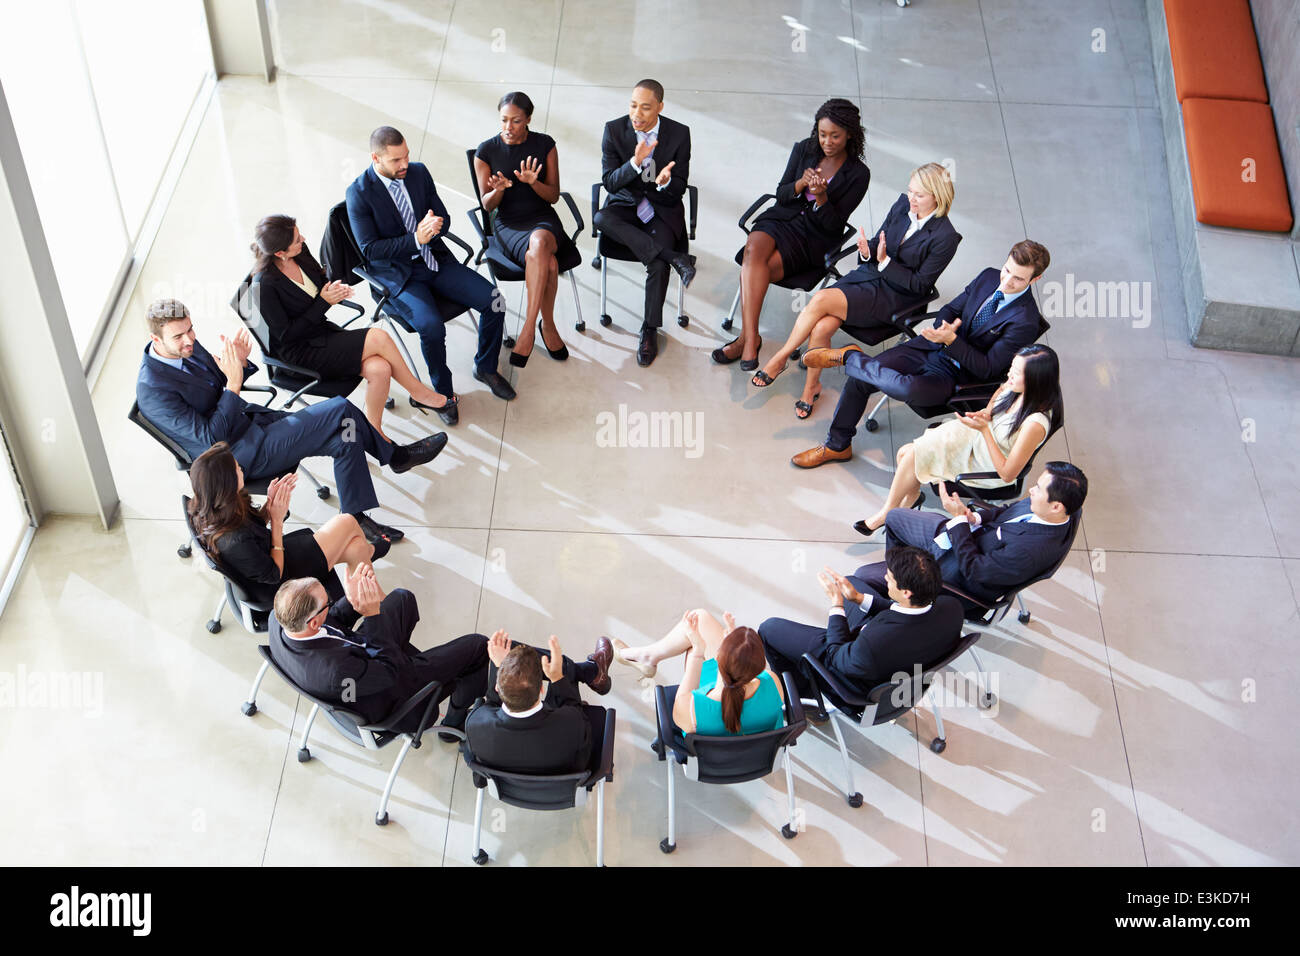 Multi-Cultural Office Staff Applauding During Meeting - Stock Image